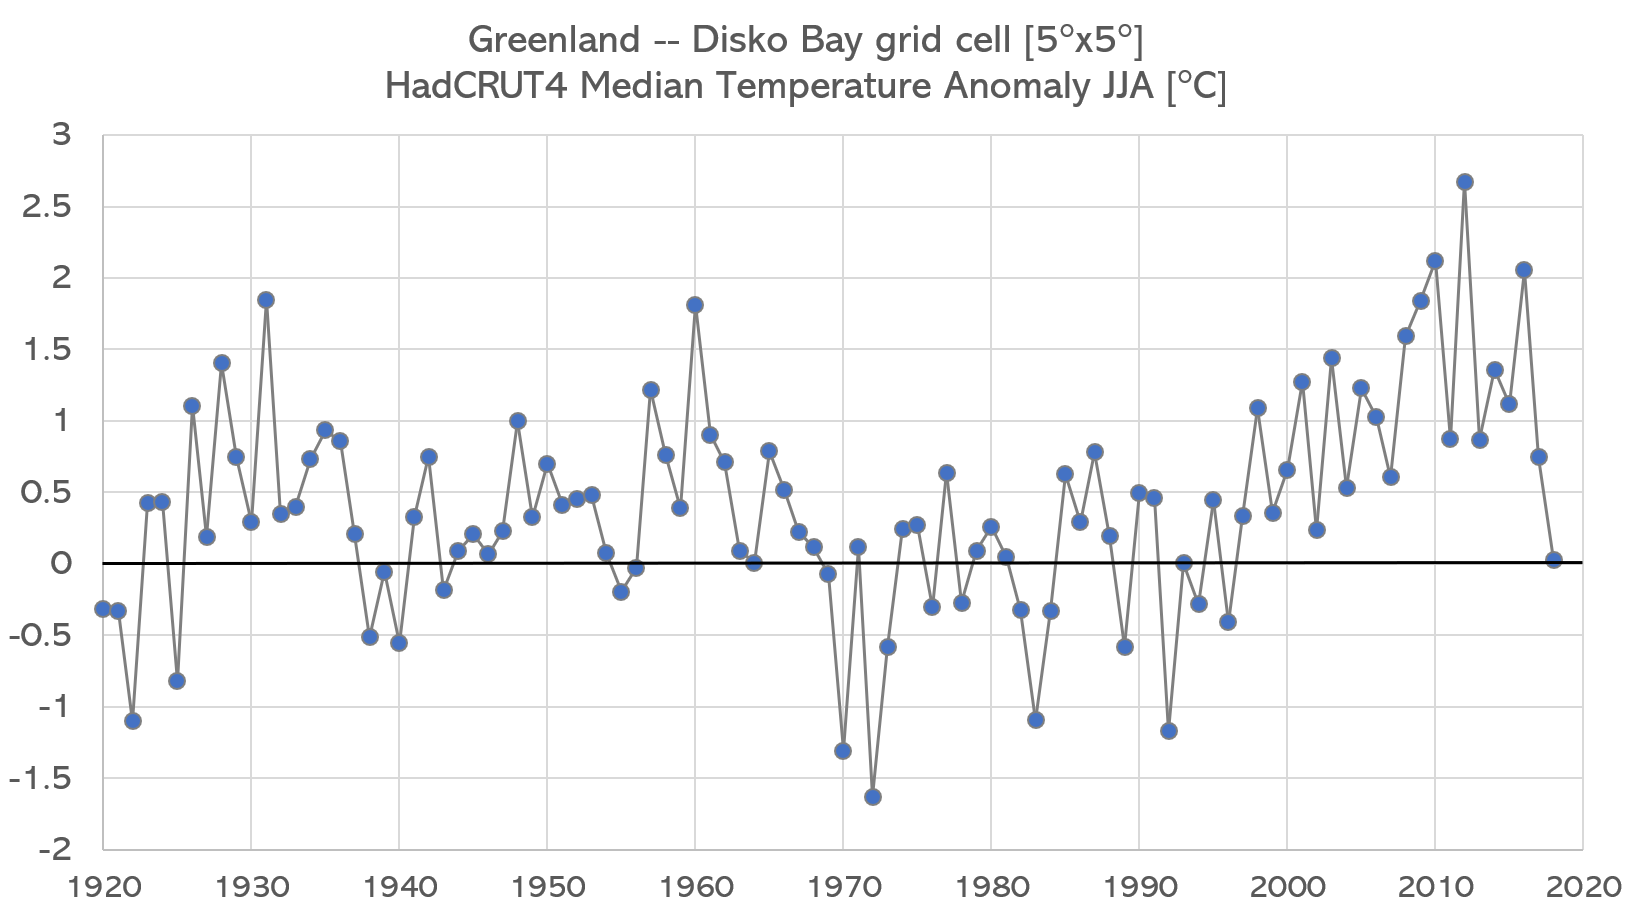 Figure 1.  Regional temperature history for Disko Bay, which includes the Ilulissat icefjord.